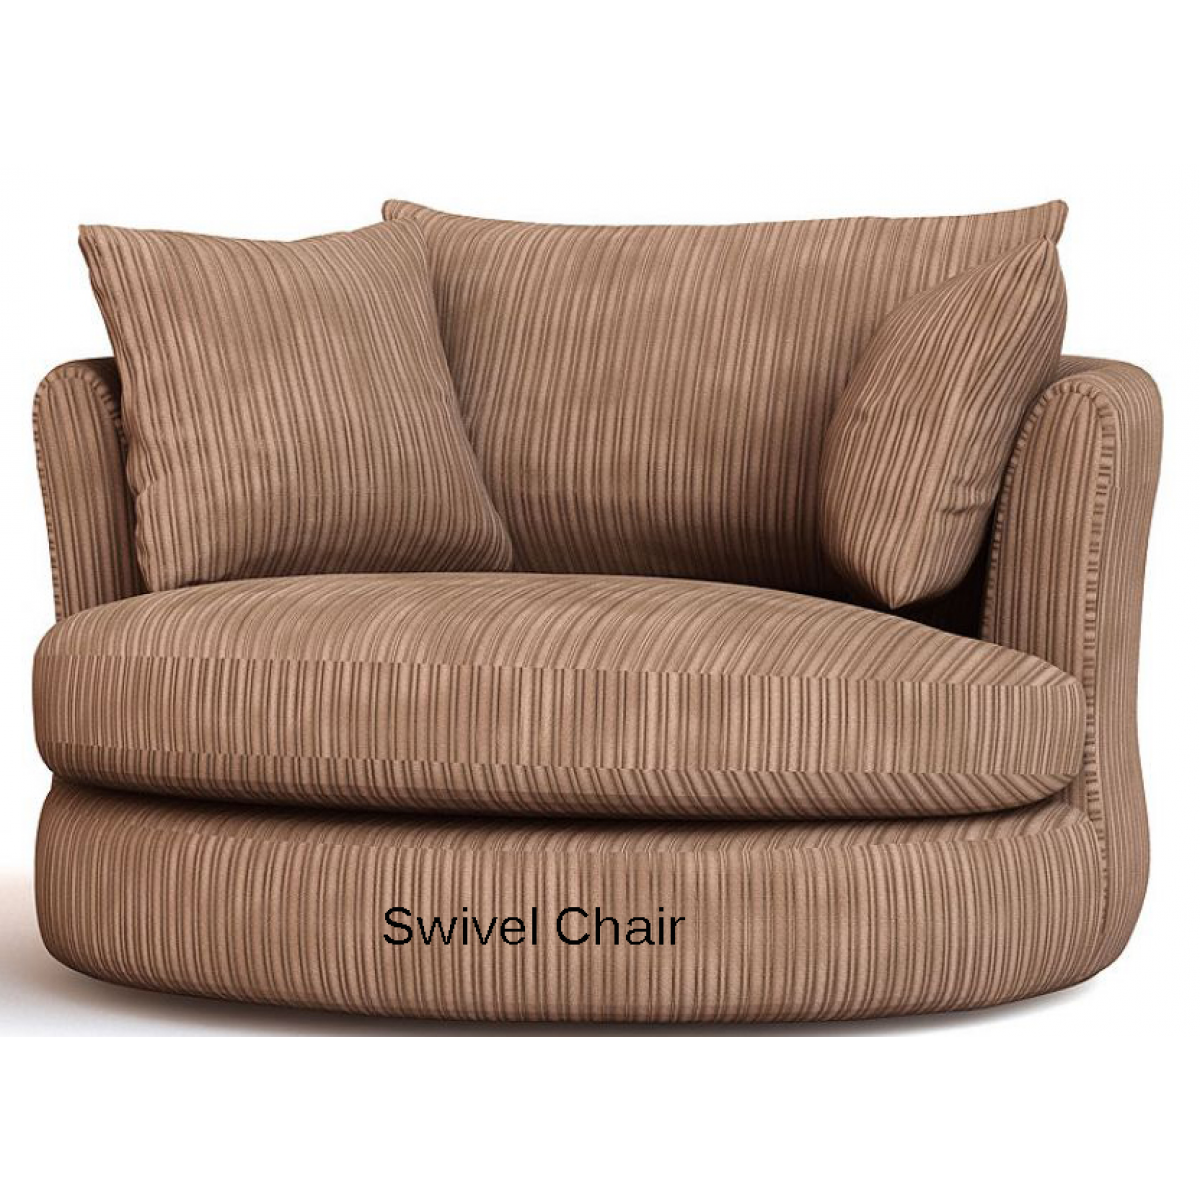 Amusing Cannon Swivel cuddle chair with cushion and for your Beautiful Living Room Ideas